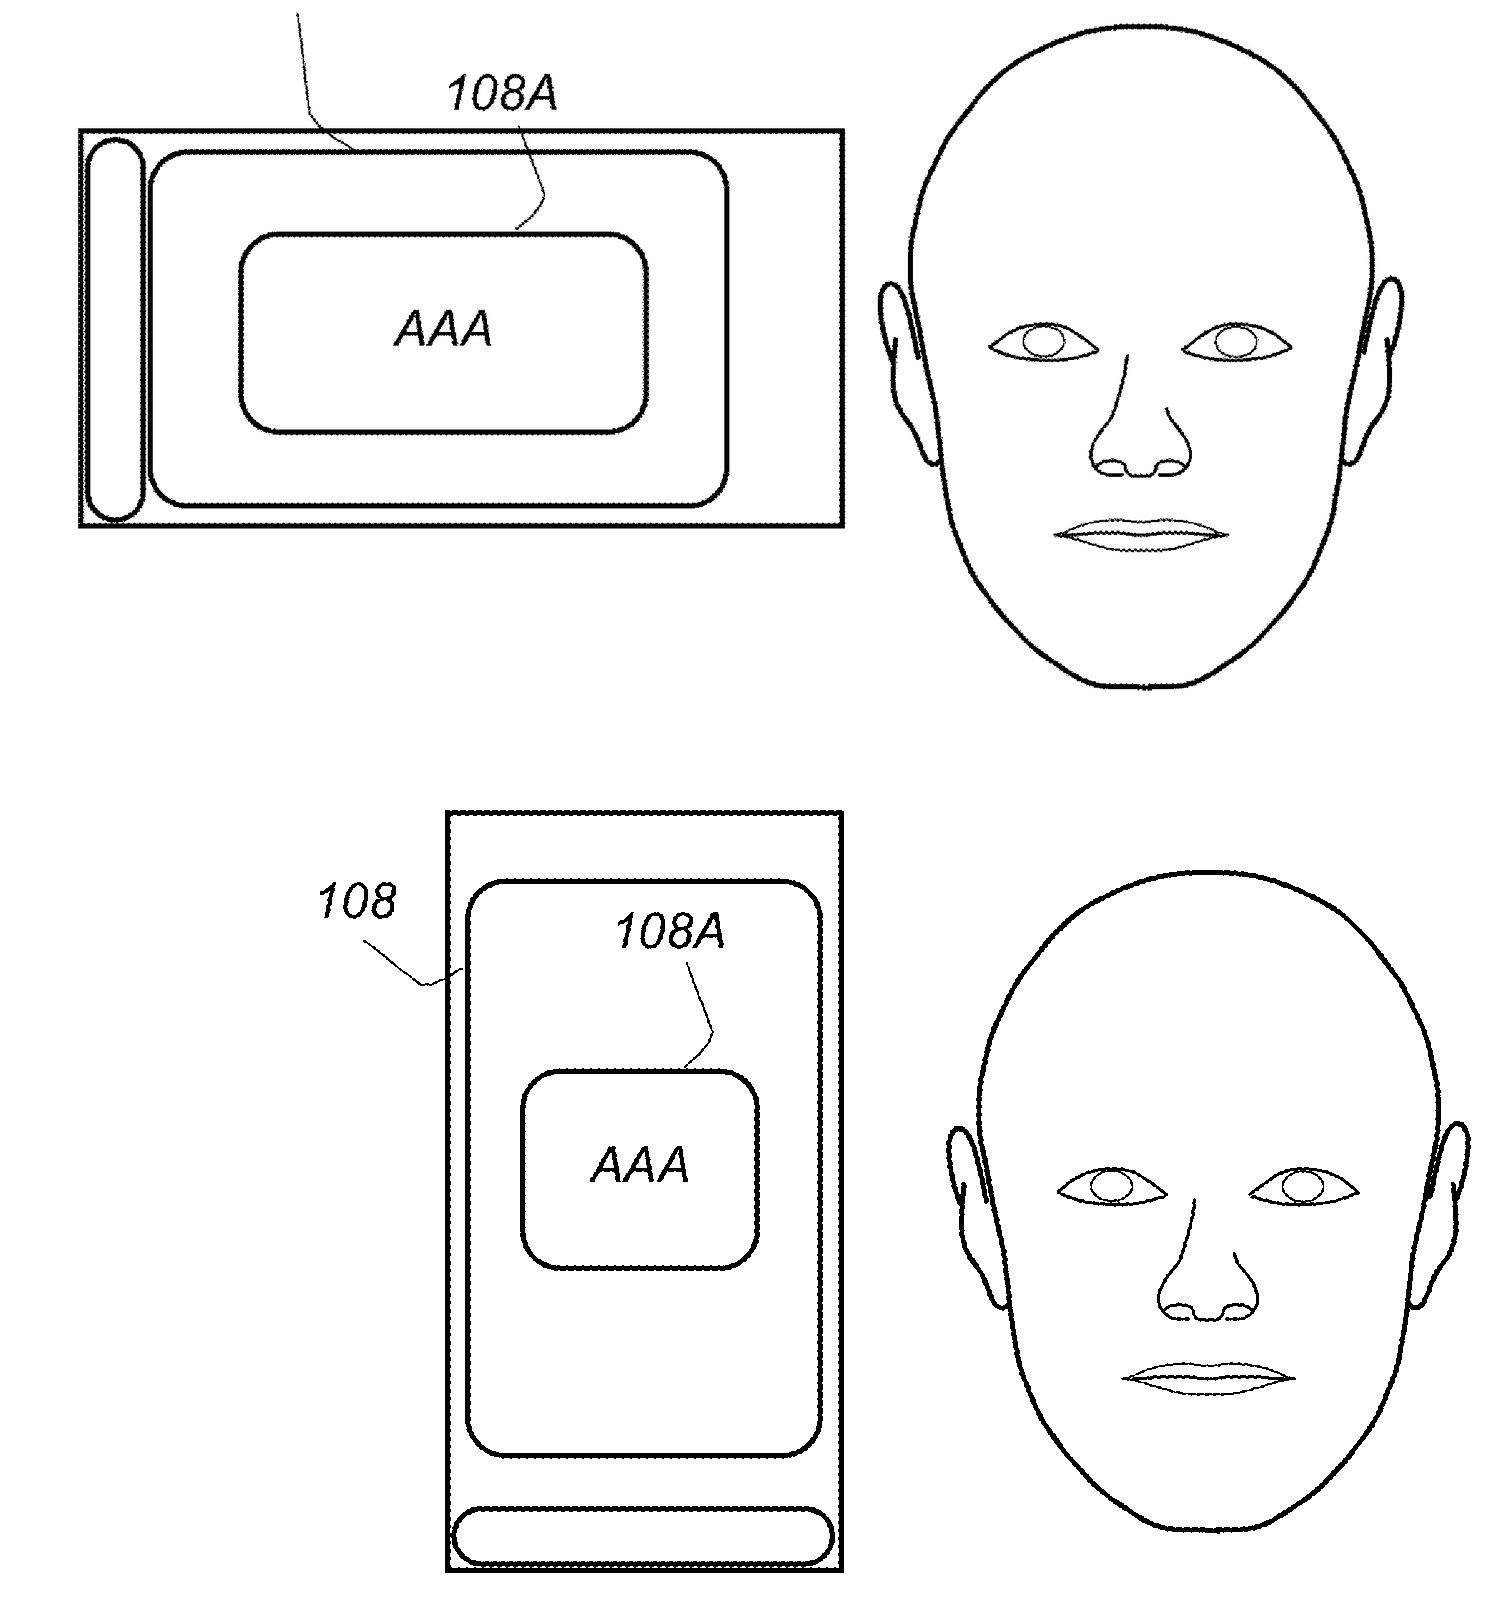 Apple's patented solution proposes using your face to